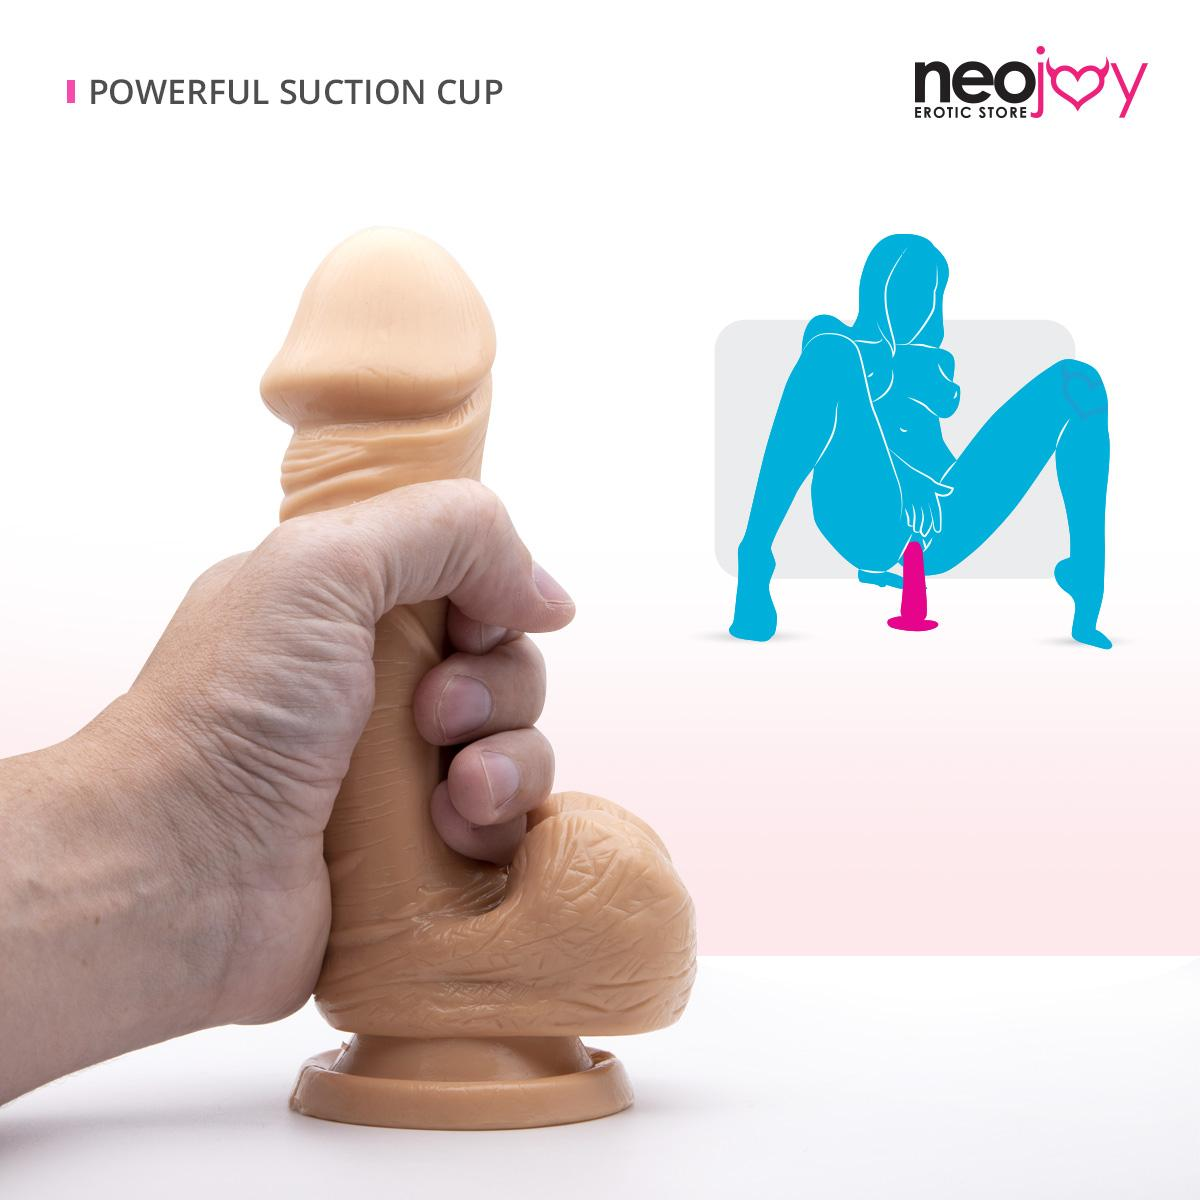 Neojoy Realistic Dildo TPE With Suction Cup - Flesh 7.4 inch -19cm 3